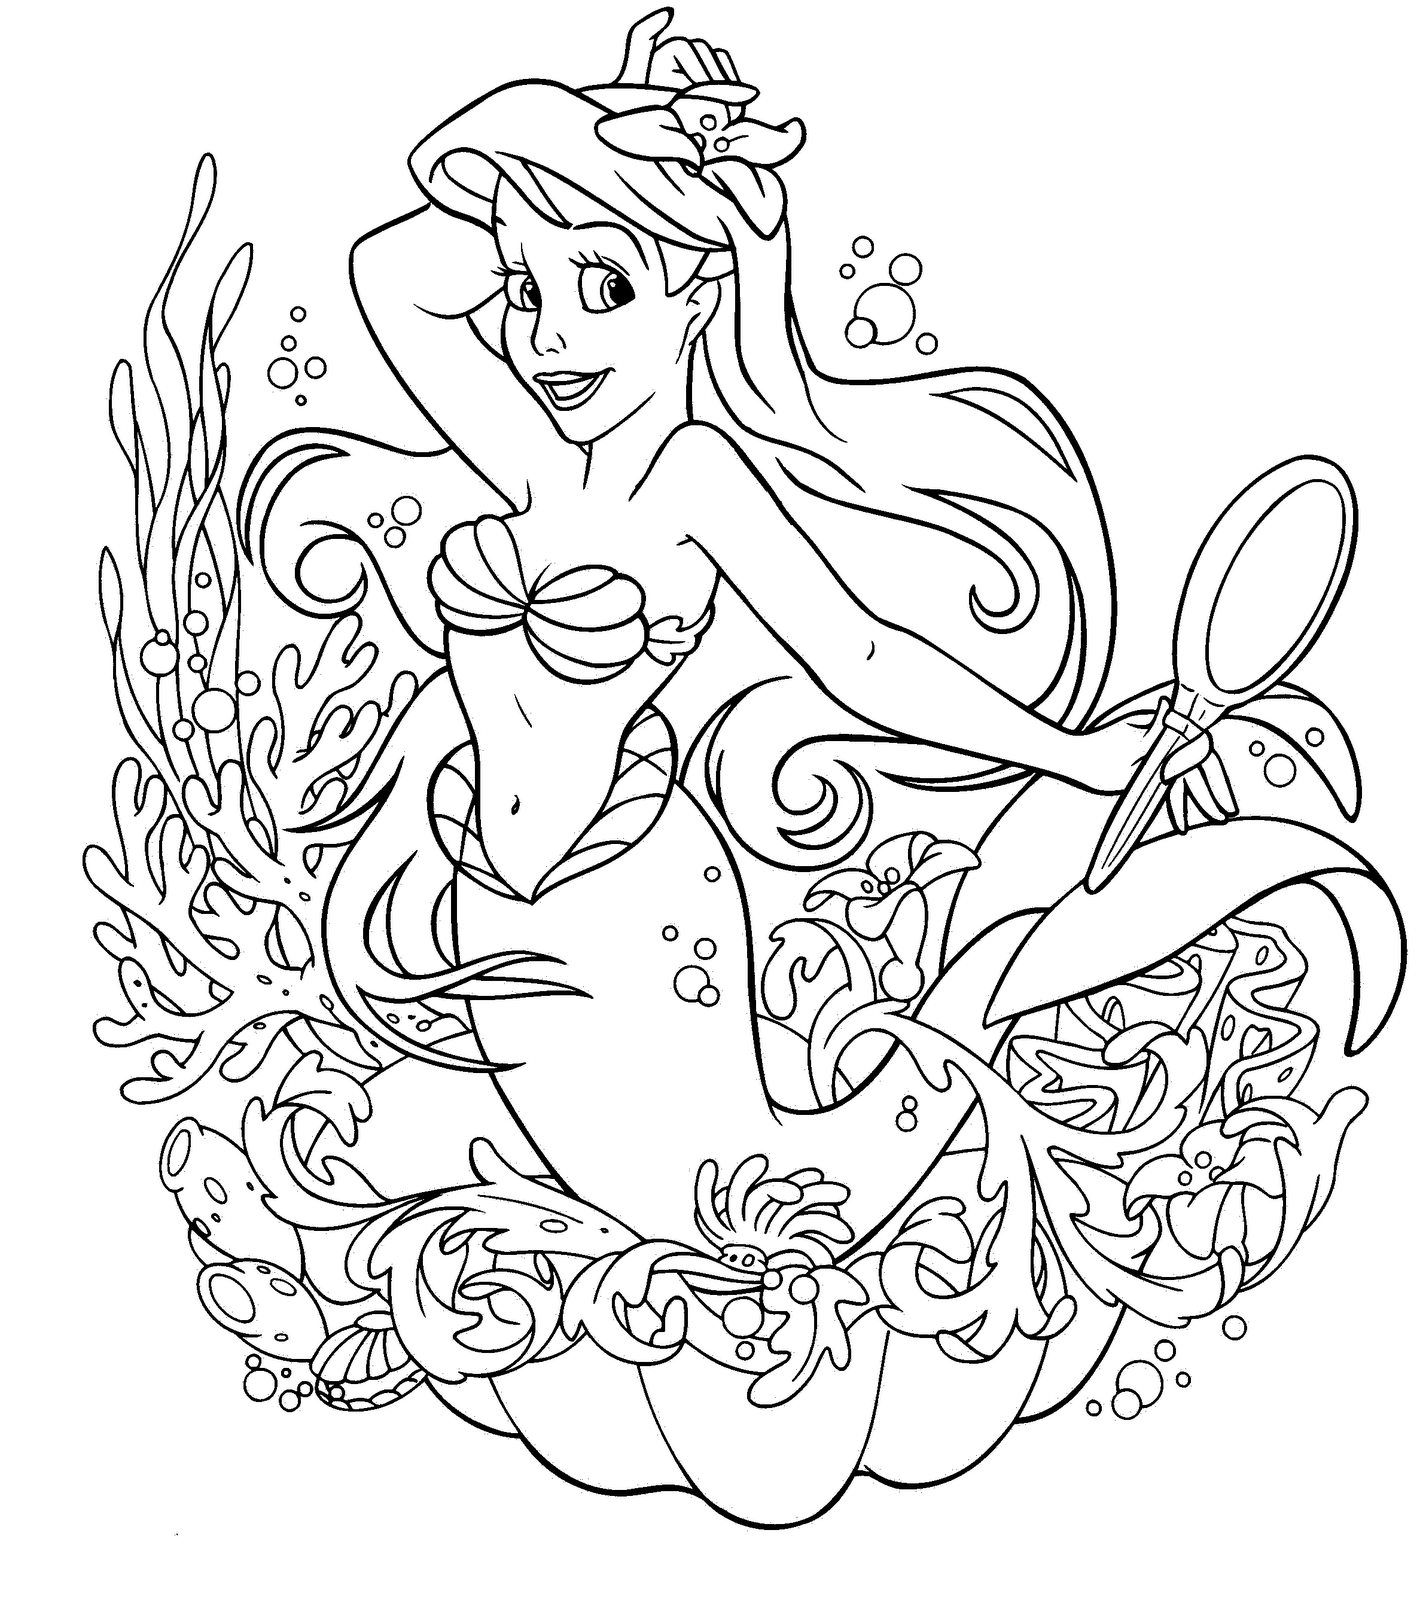 Frozen Coloring Pages Colouring Page Free Printable  - free coloring pages to print disney